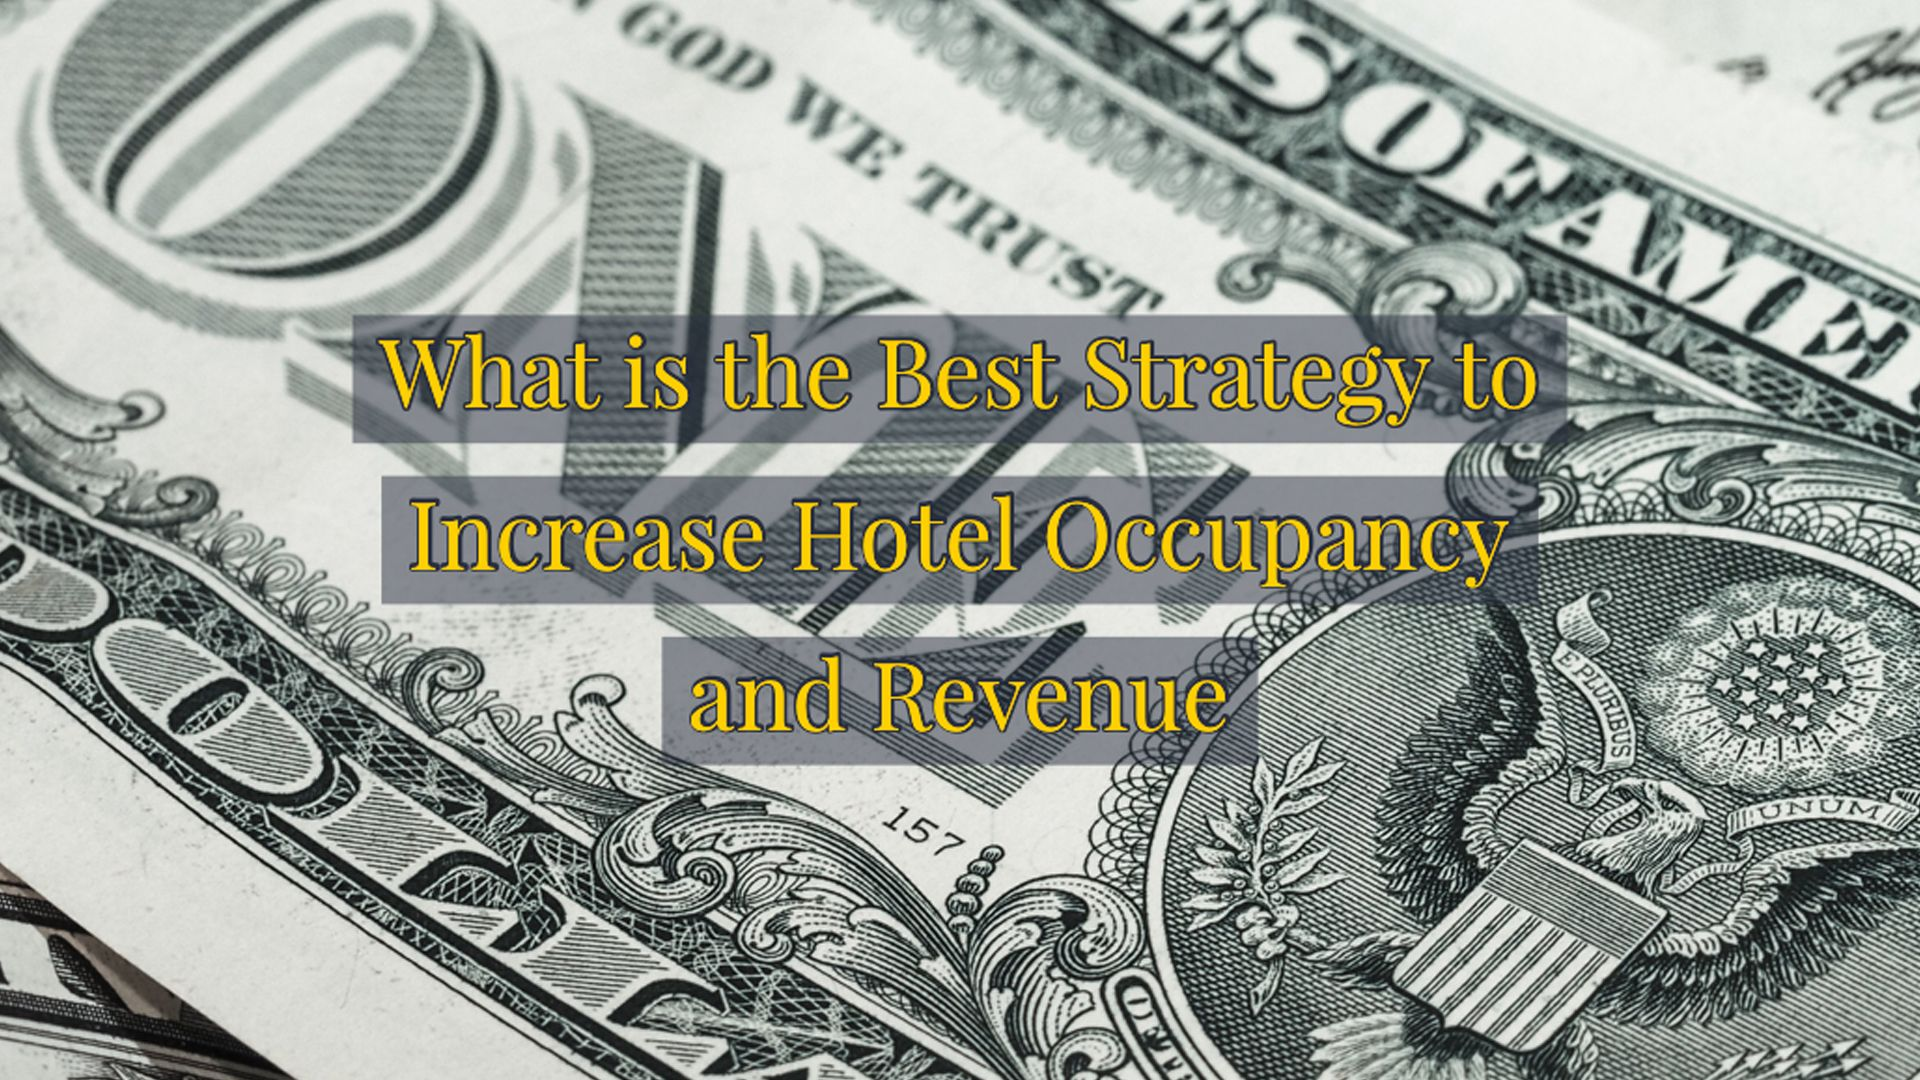 What is the Best Strategy to Increase Hotel Occupancy and Revenue?